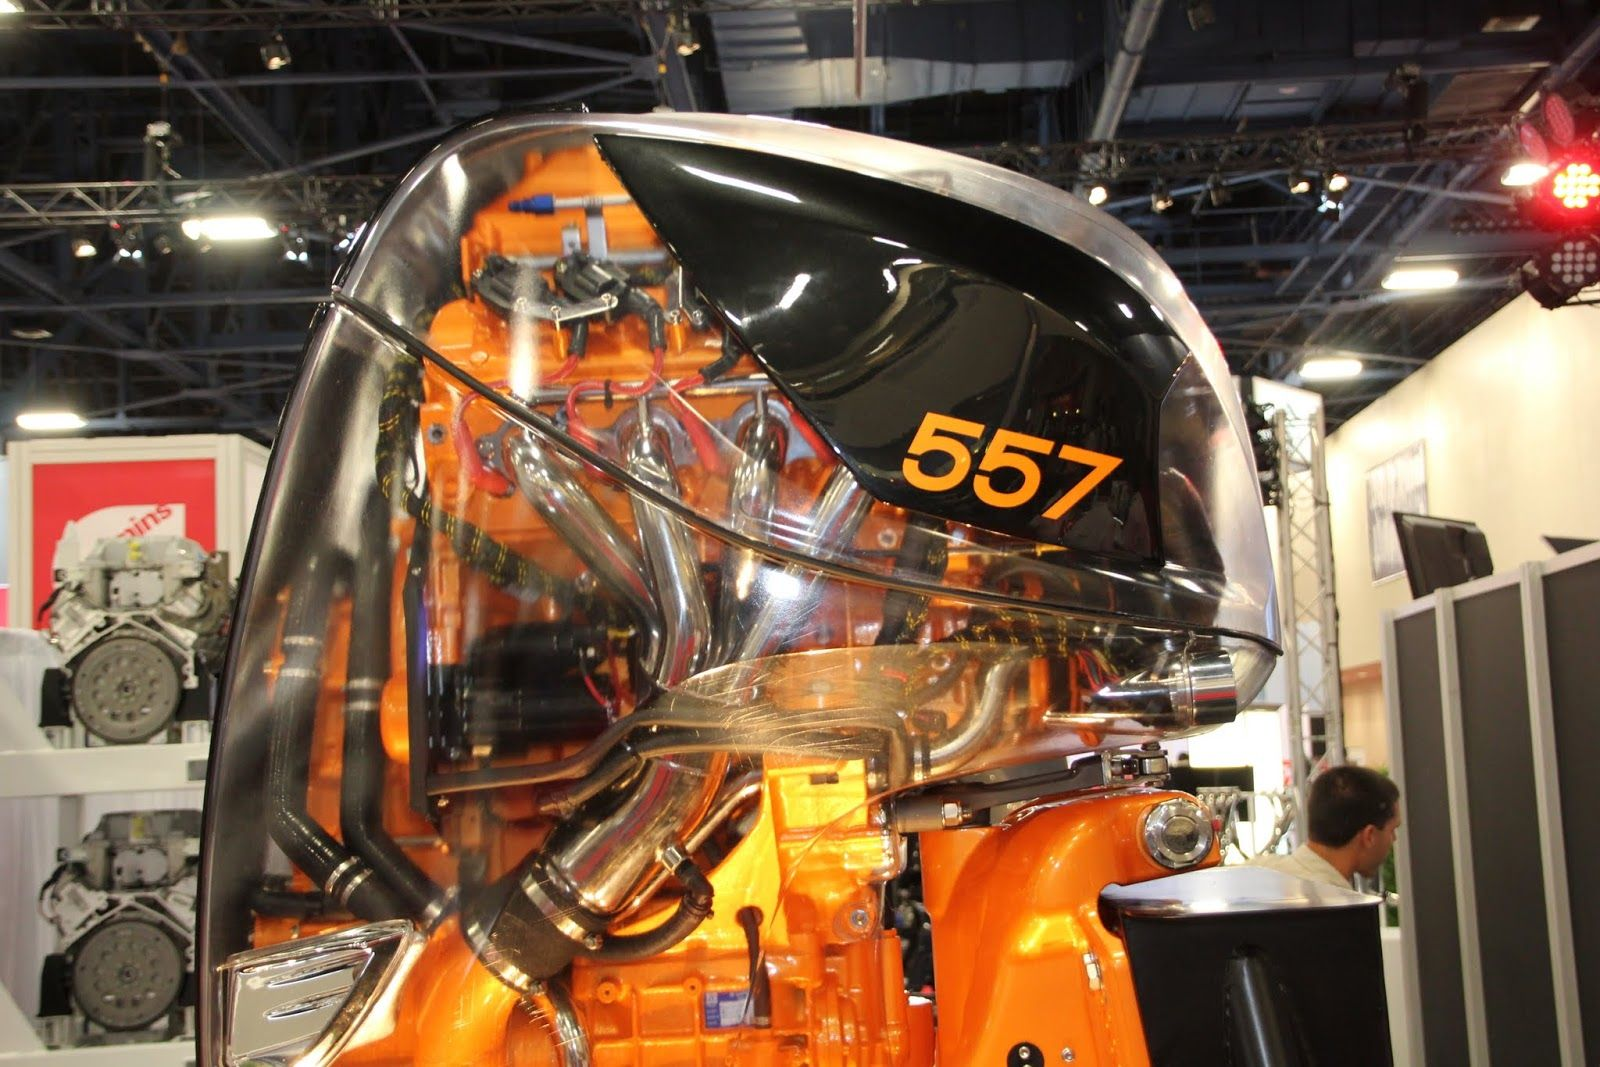 Seven Marine 557 Motors Released Into The Wild Outboard